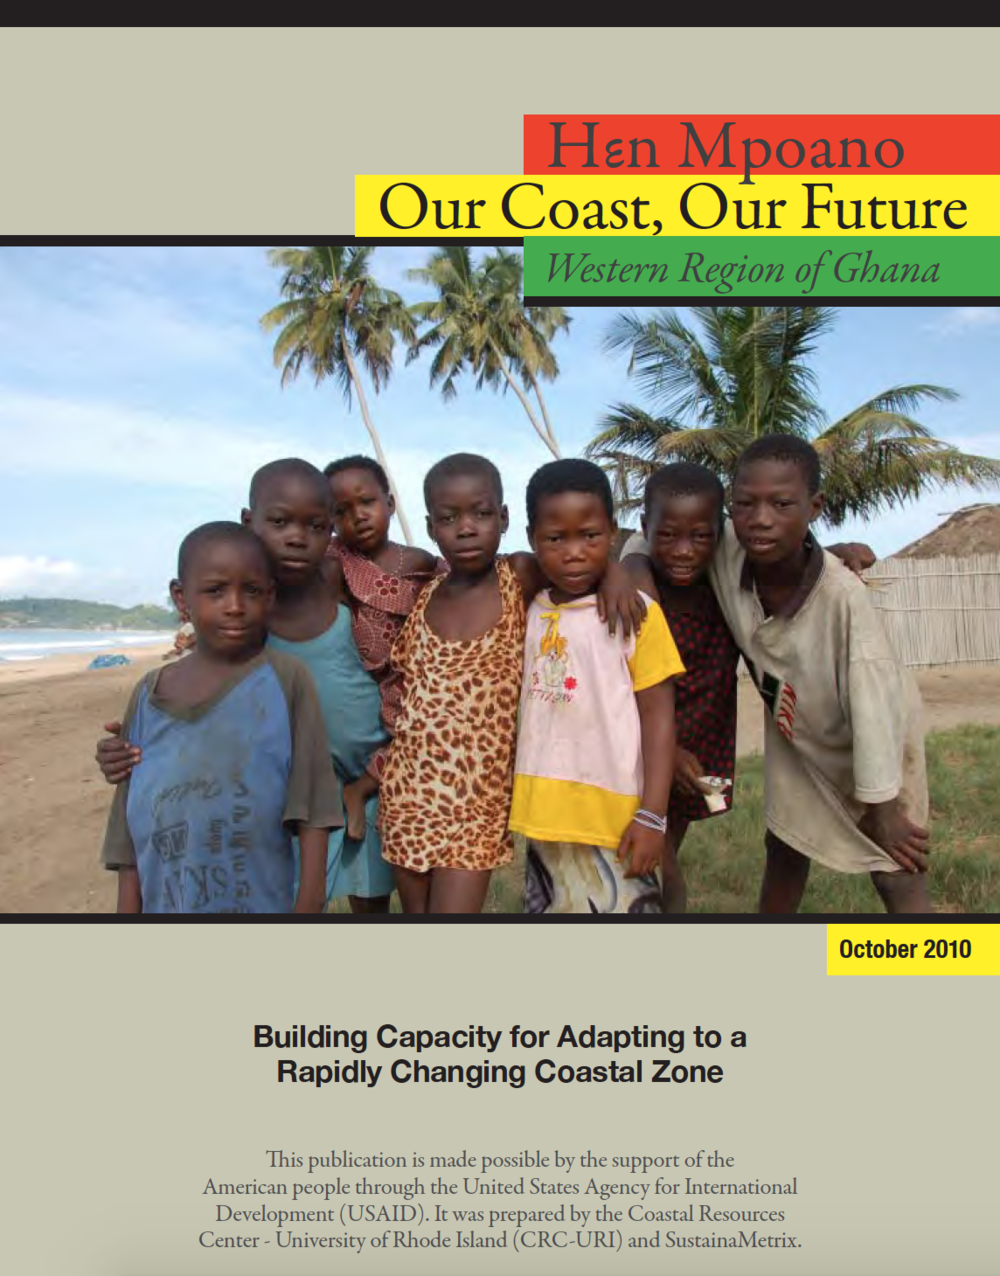 USAID project in Ghana's Western Region - SustainaMetrix co-created and implemented this capacity building project with Stephen Olsen of the Coastal Resources Center at the University of Rhode Island, and with the people of Ghana's Western Region. The Integrated Coastal and Fisheries Governance Initiative, referred to as Hεn Mpoano, was designed as an expression of the ecosystem approach to coastal governance. This called for combining bottom-up with top-down actions, and engaging stakeholders in every phase of its activities.